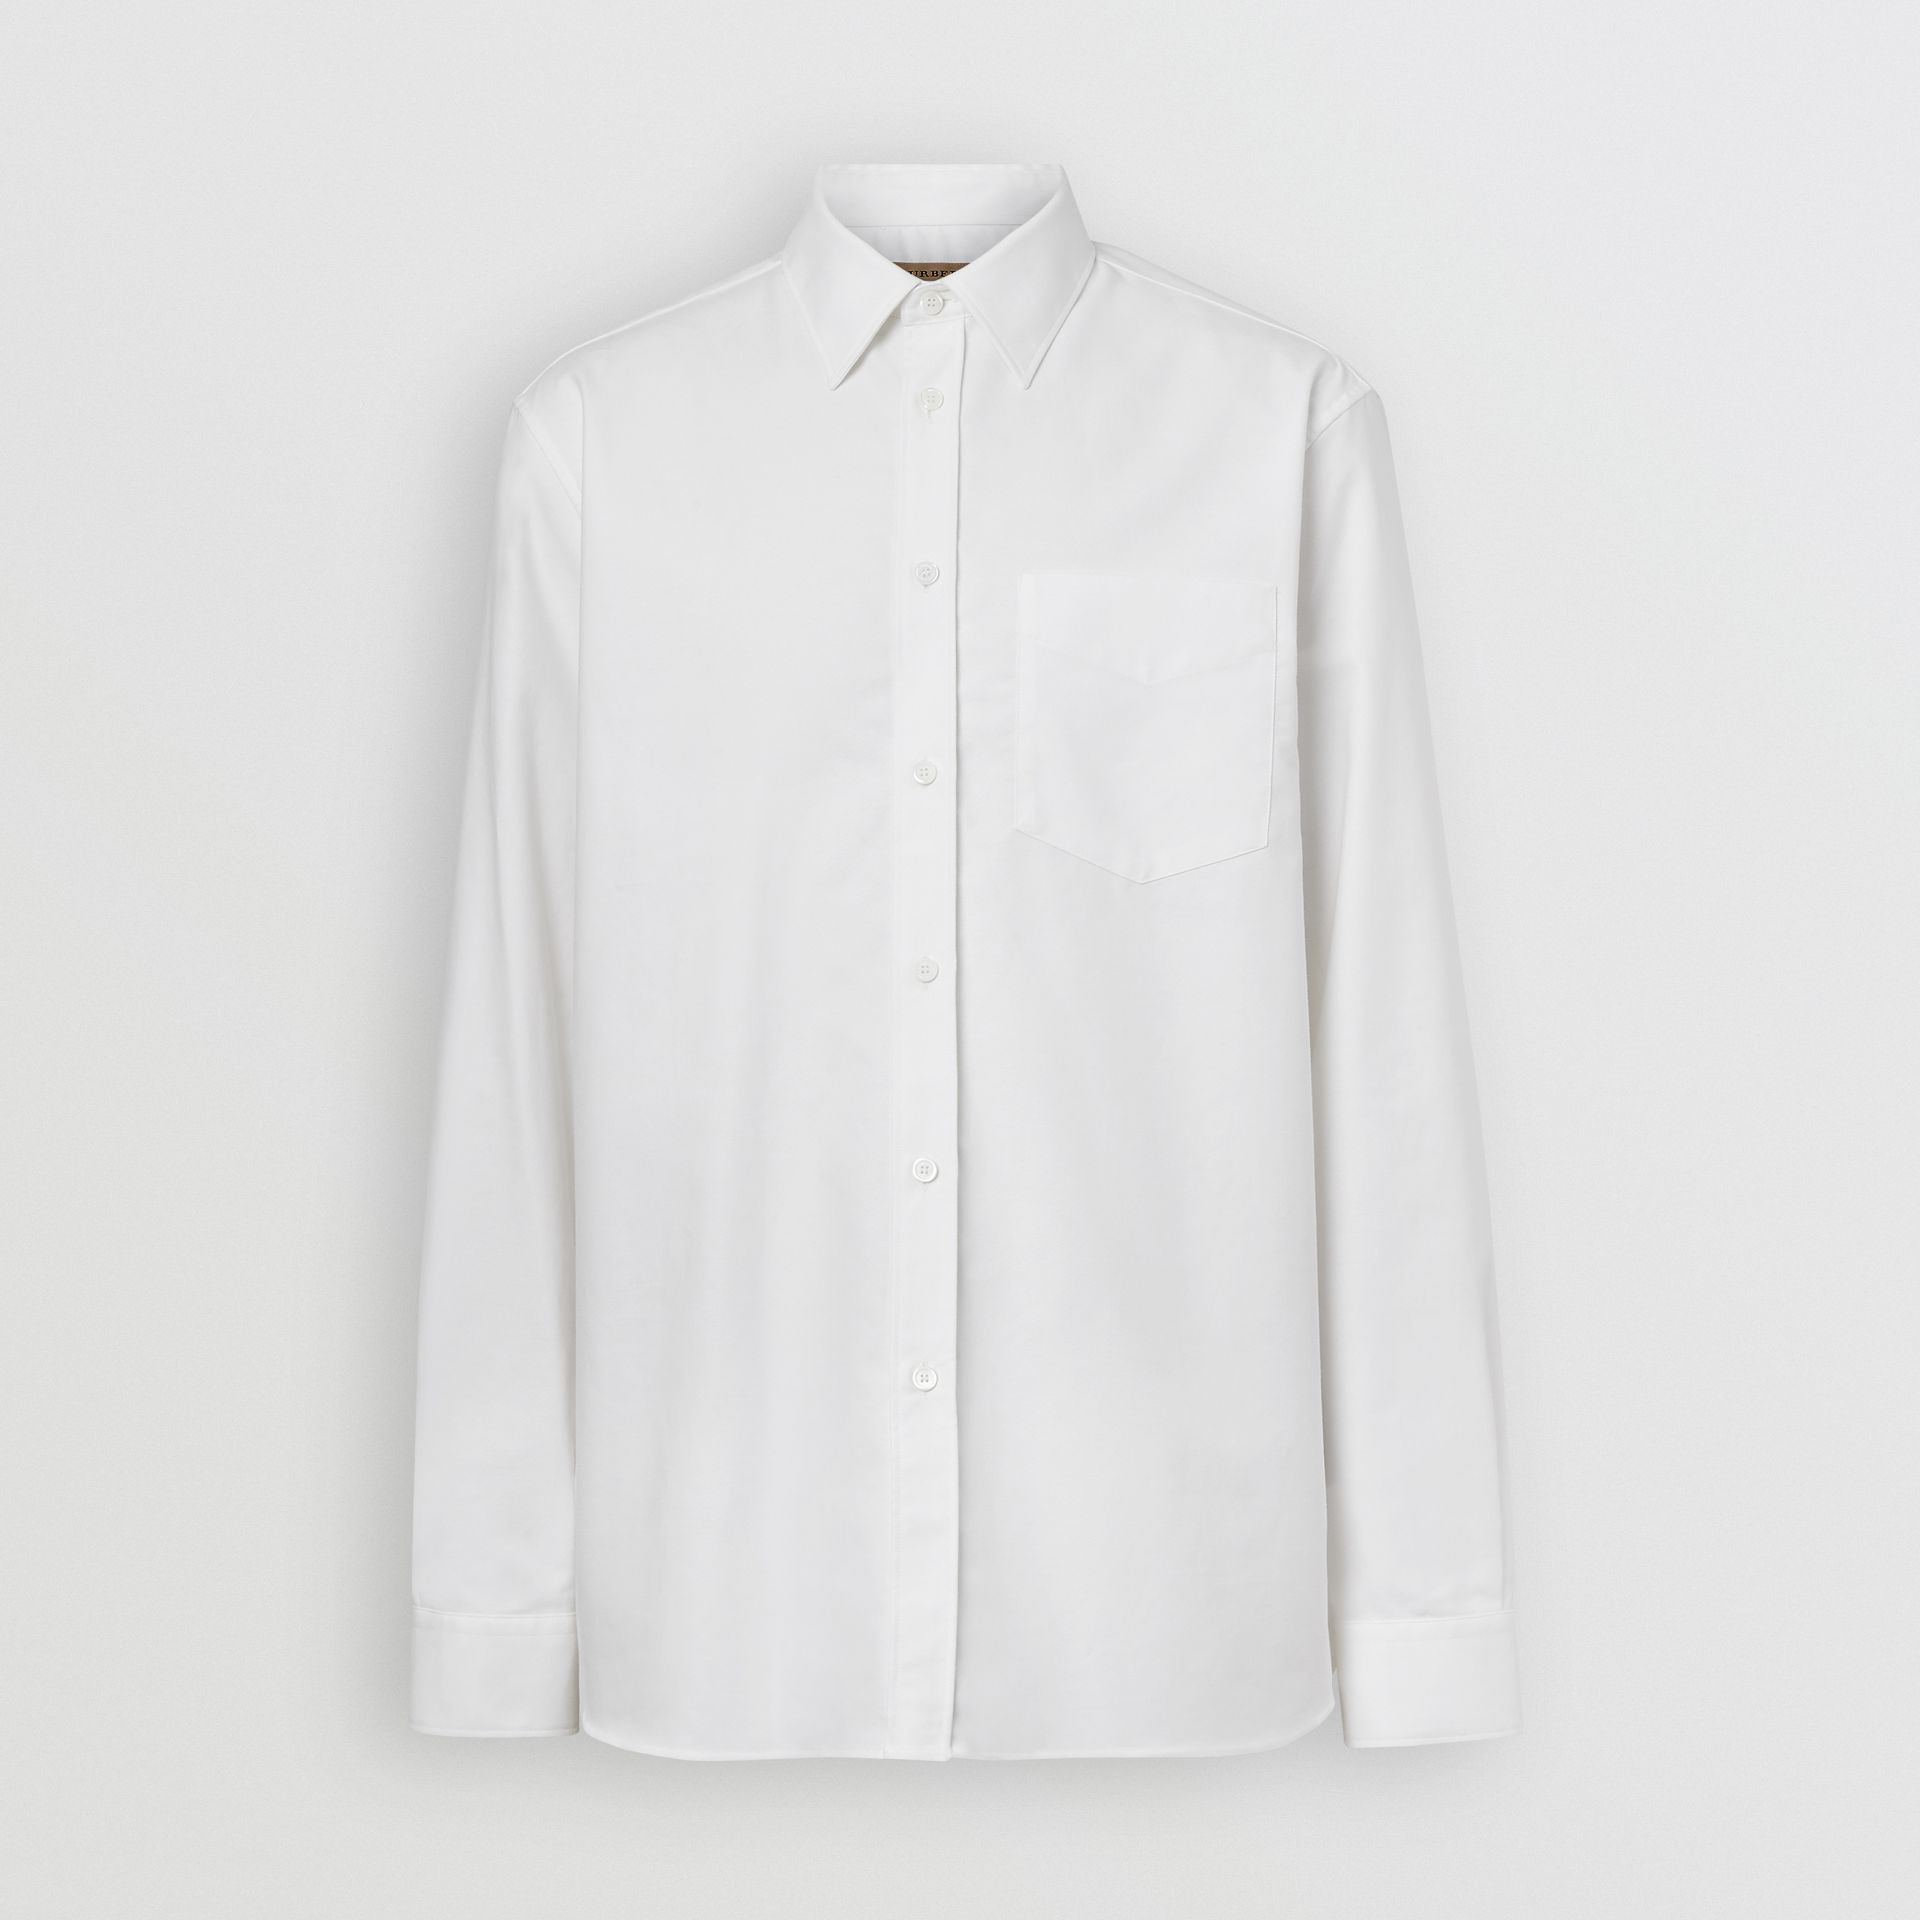 EKD Appliqué Cotton Oxford Shirt in White - Men | Burberry - gallery image 3